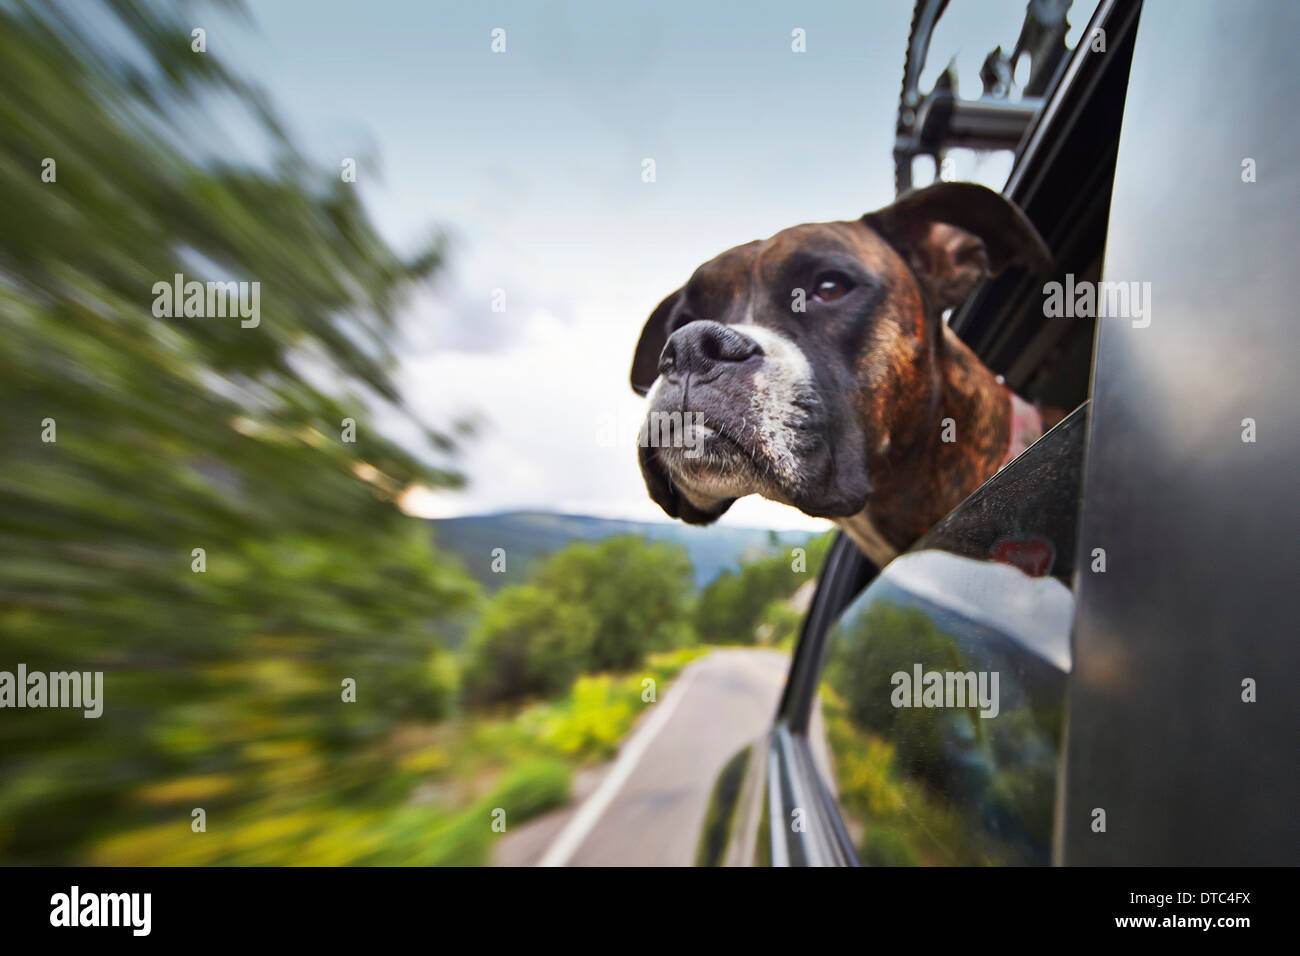 Dog looking out of car window whilst on the move - Stock Image